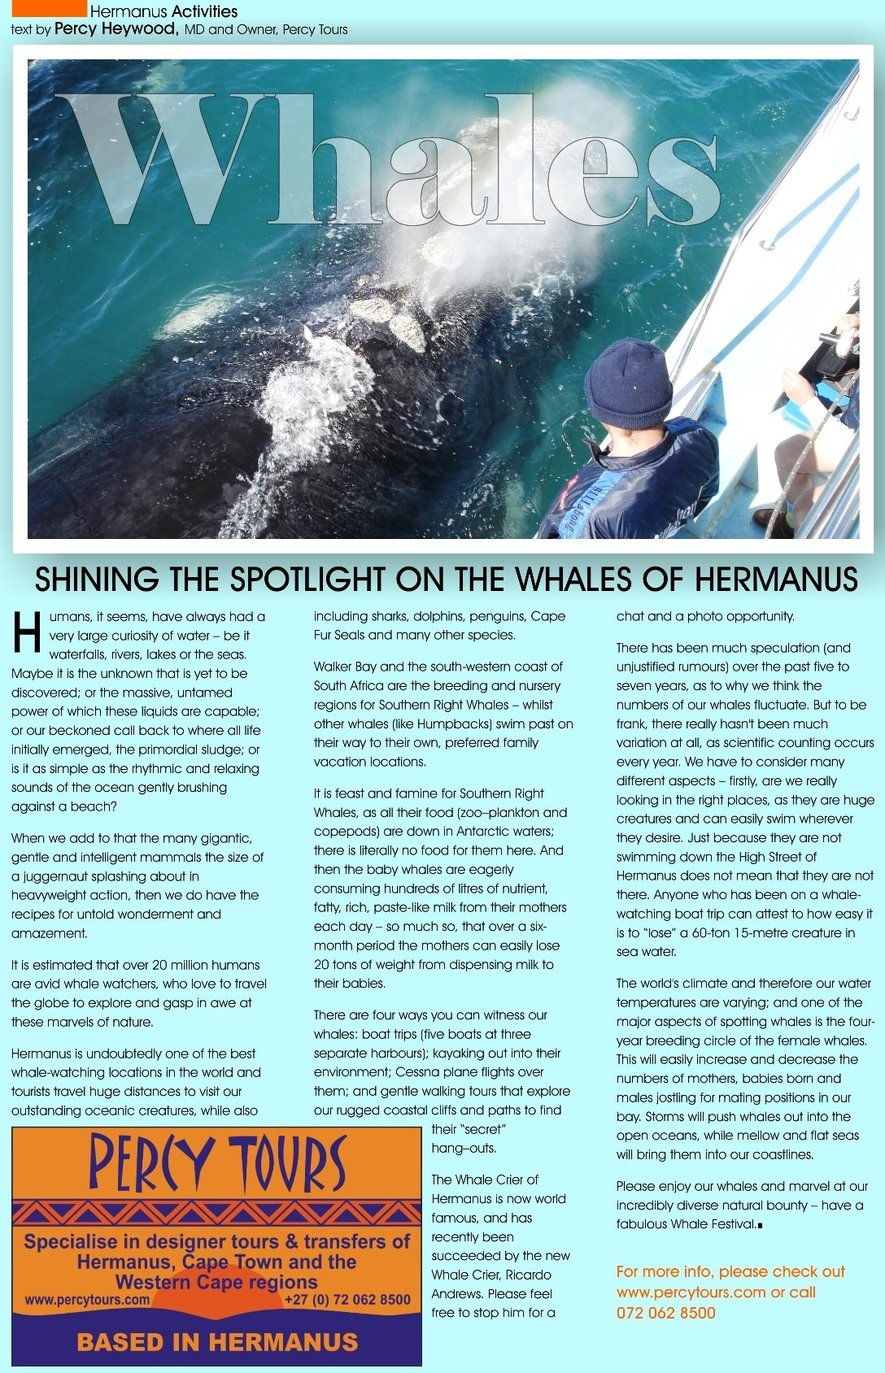 Whale watching article in Whale Talk magazine, Hermanus